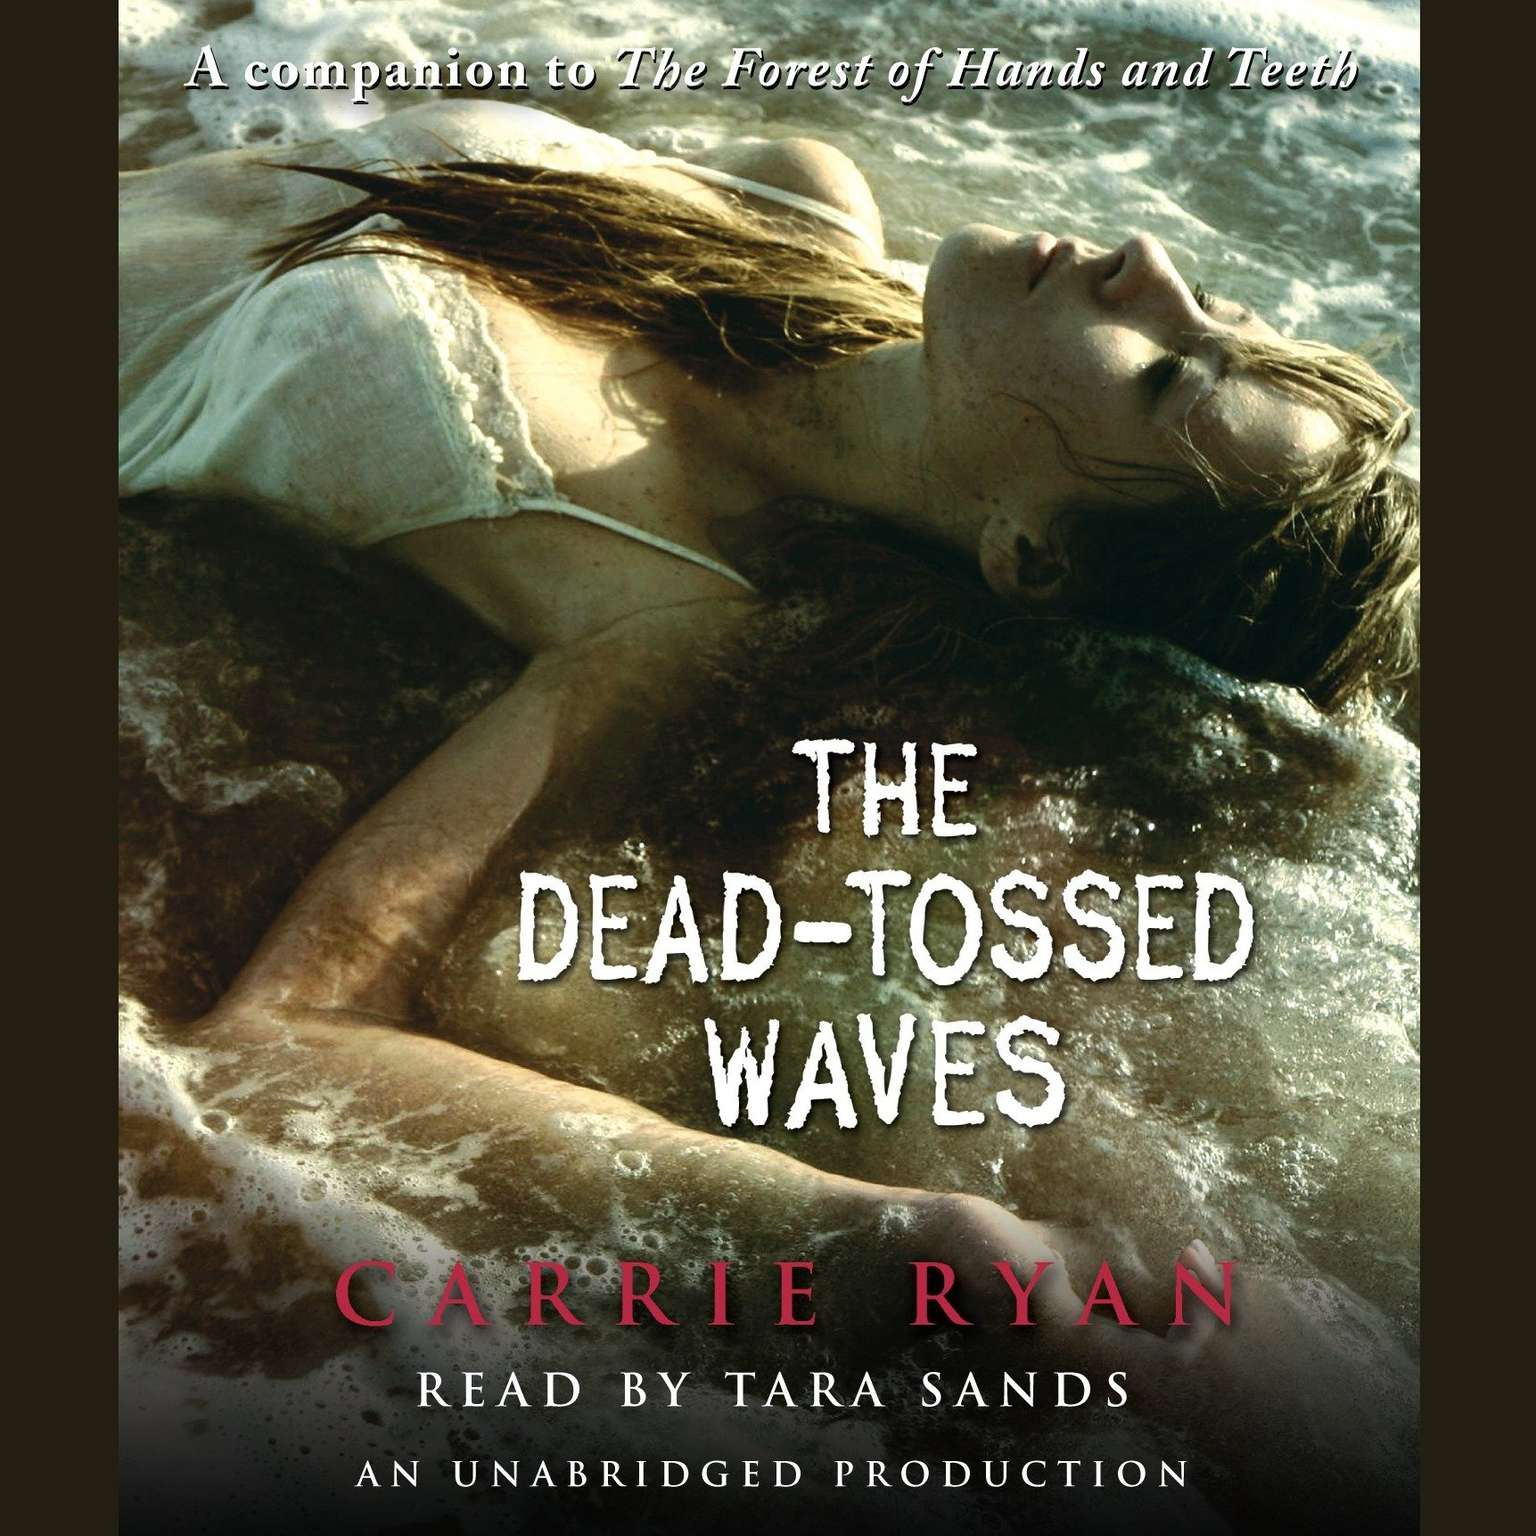 Printable The Dead-Tossed Waves Audiobook Cover Art